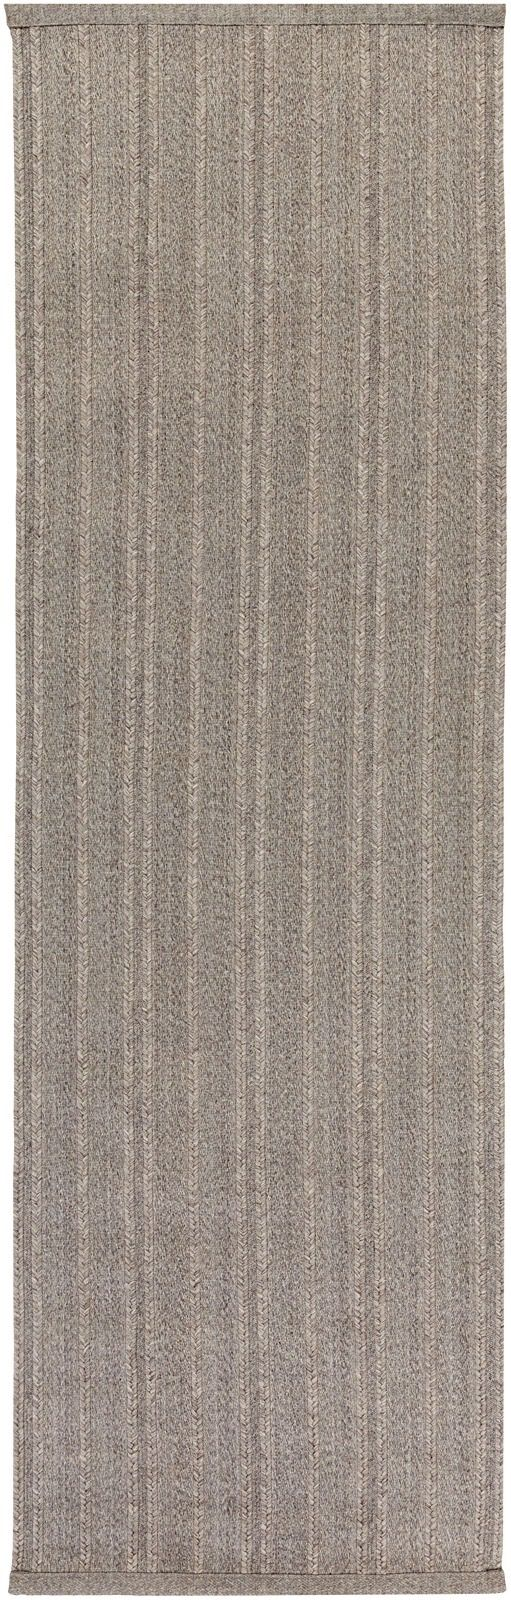 surya taran solid/striped area rug collection